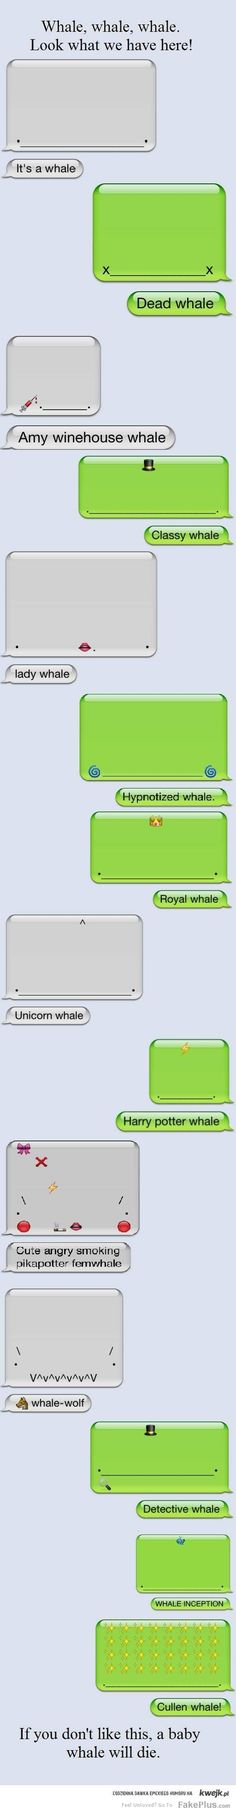 whales whales whales!